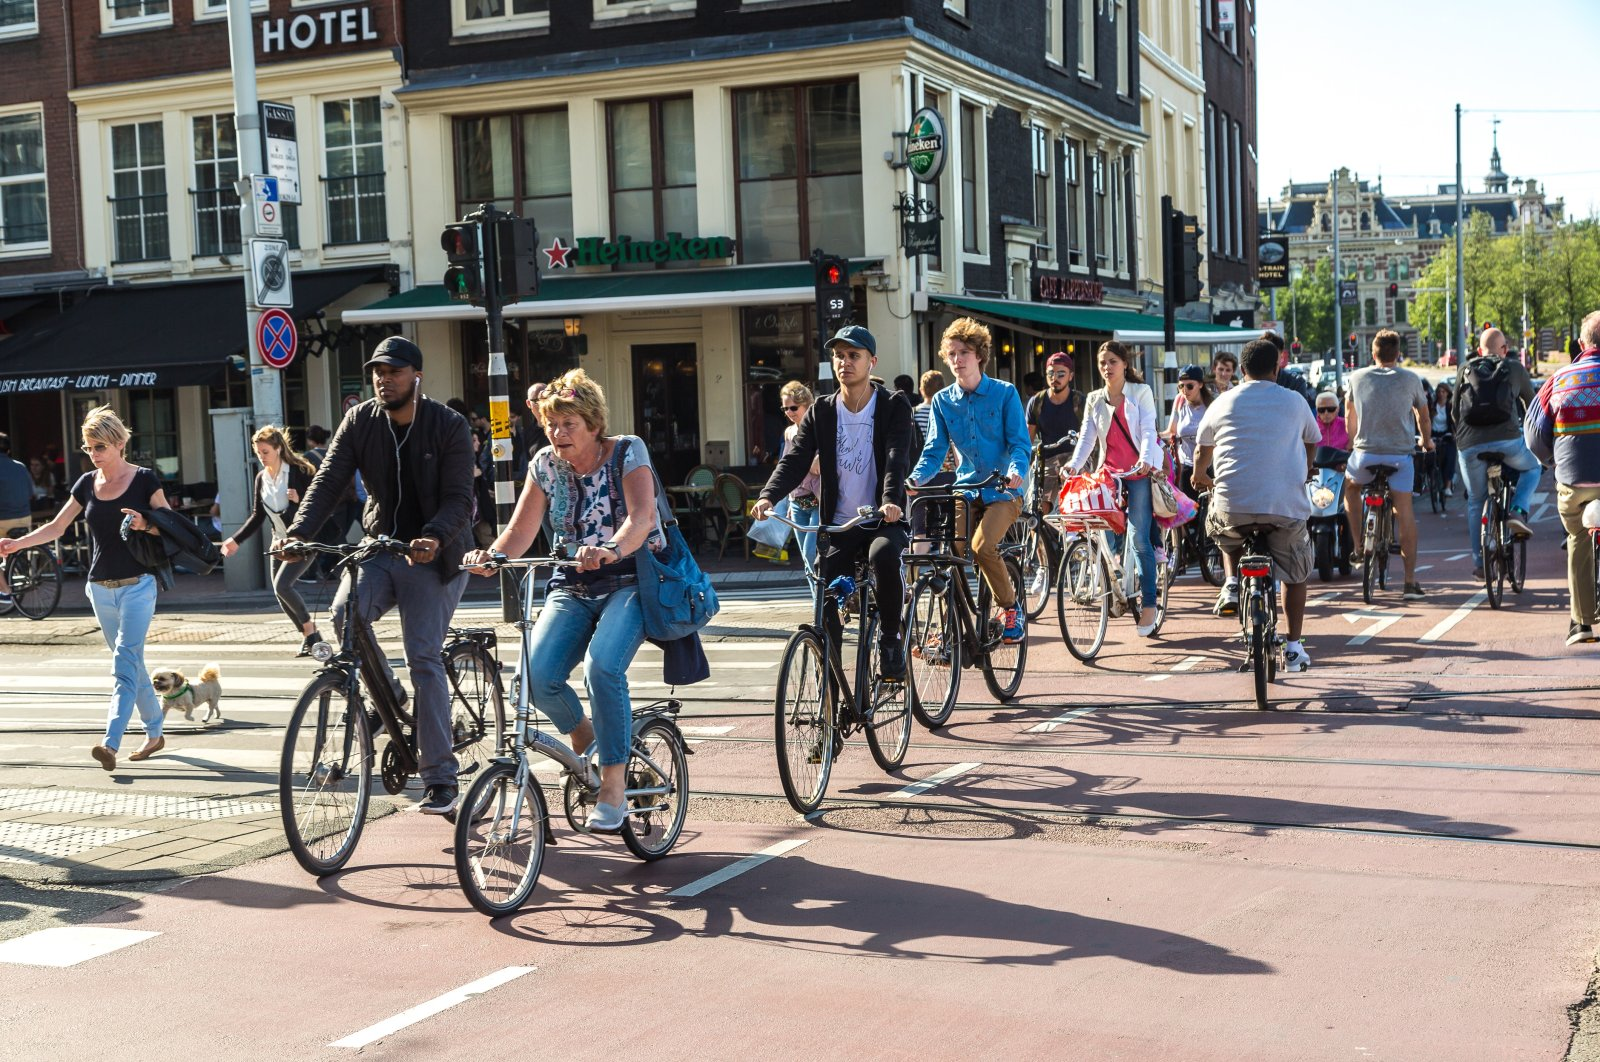 People riding bicycles in a historical part of Amsterdam, The Netherlands, June 16, 2016. (Shutterstock Photo)